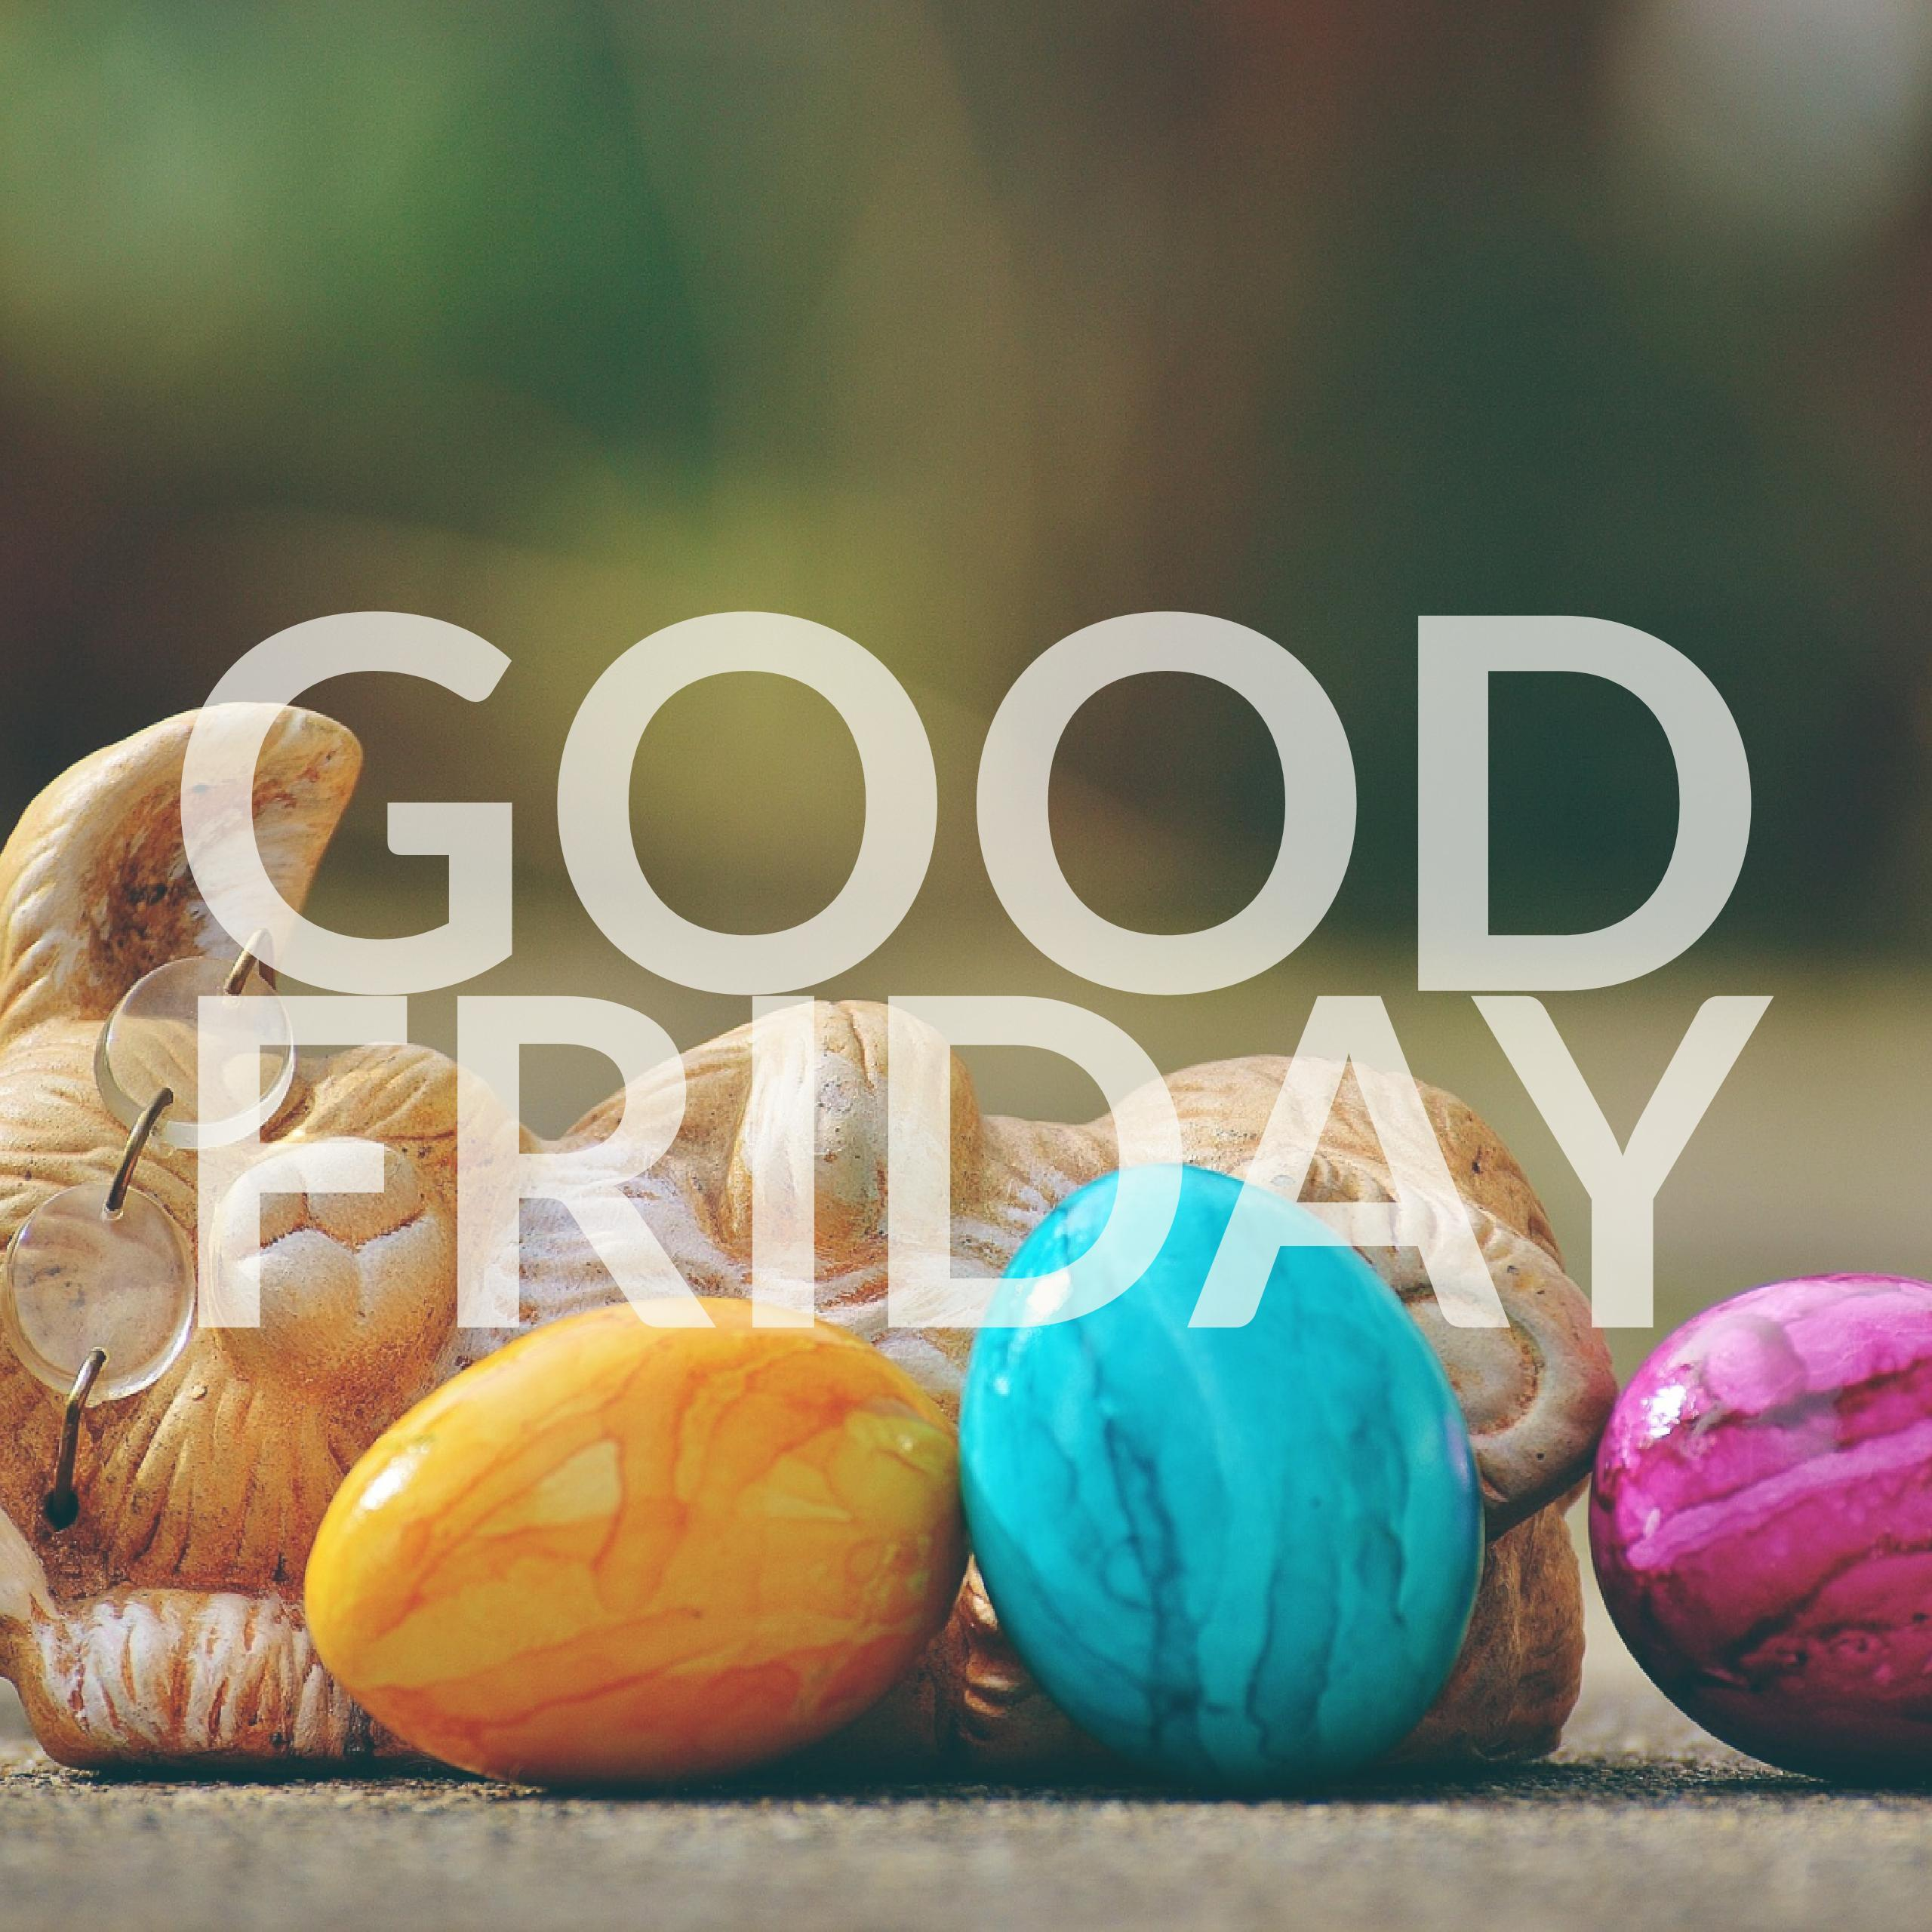 Good Friday Public Holiday